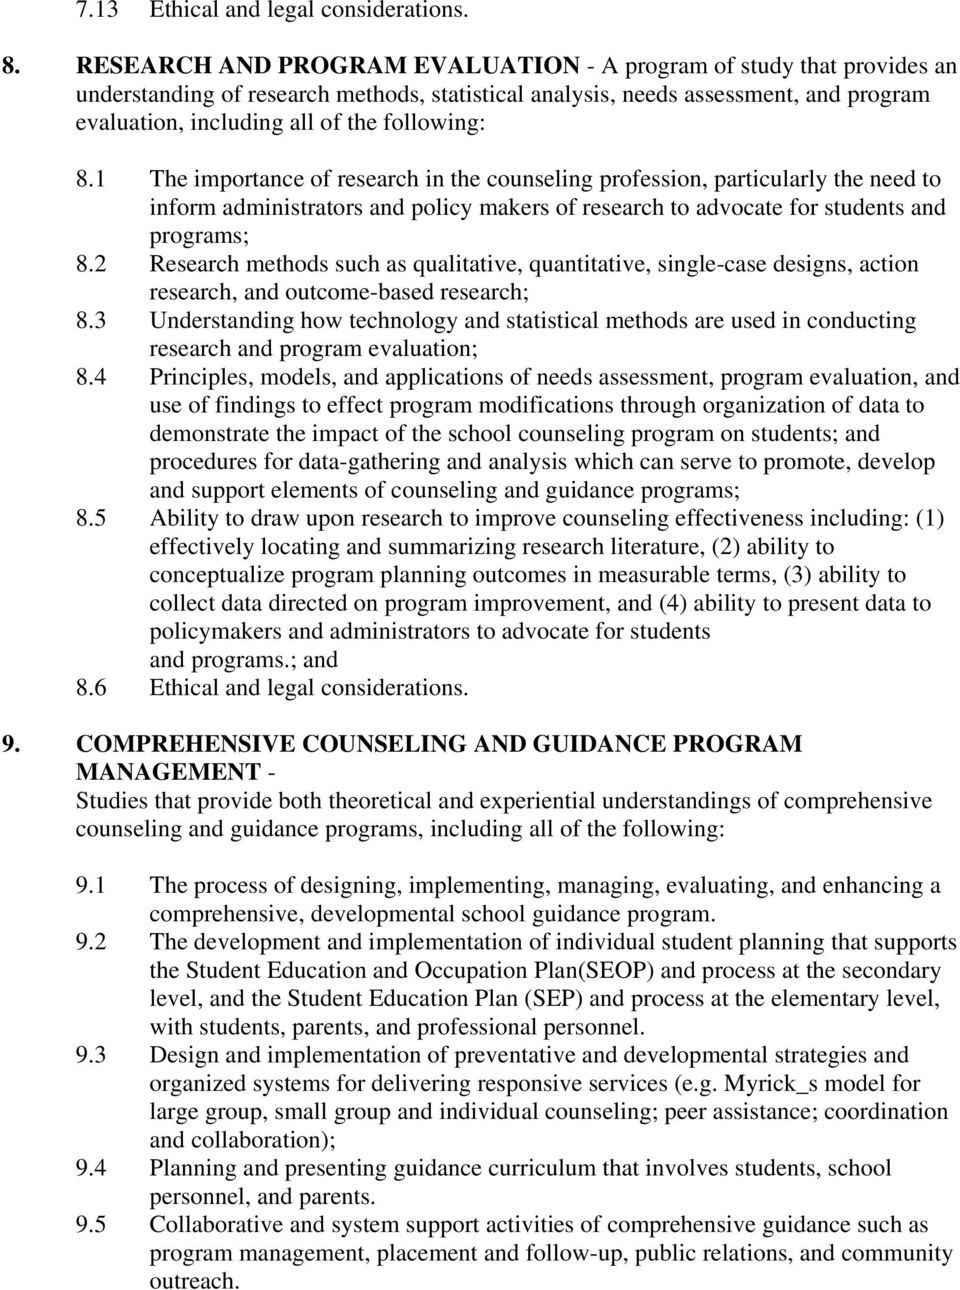 following: 8.1 The importance of research in the counseling profession, particularly the need to inform administrators and policy makers of research to advocate for students and programs; 8.